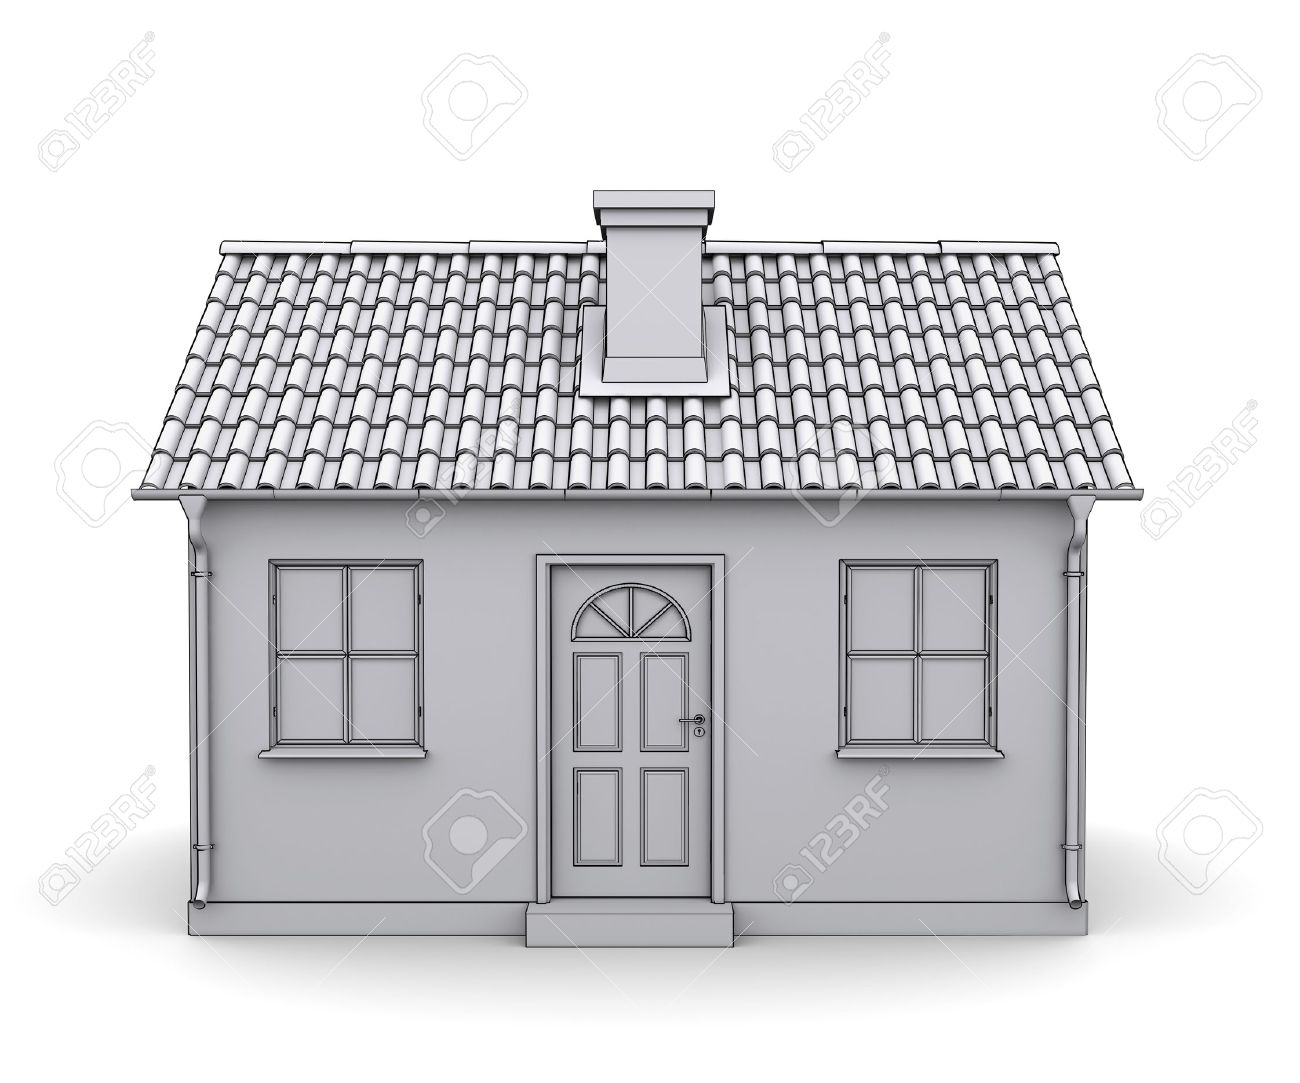 Frame House 3d Model Of A White Stock Photo, Picture And Royalty ...